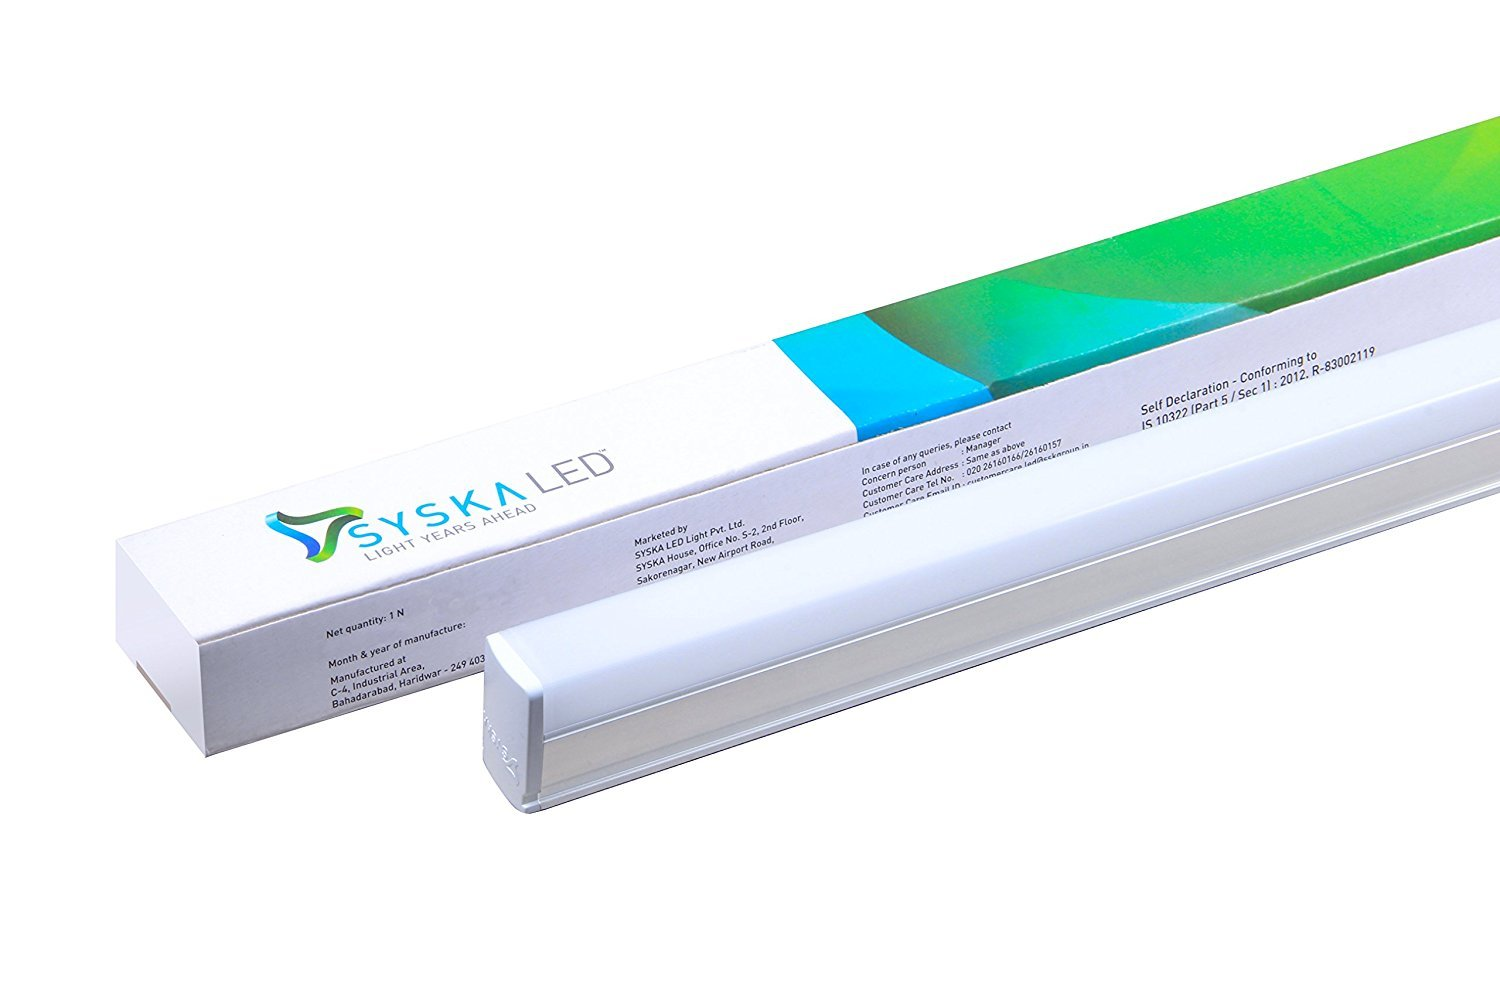 Working from home will become easy:Syska launches two unique LED products – Syska T5 LED Batten and Syska T5 LED Batten (AL)